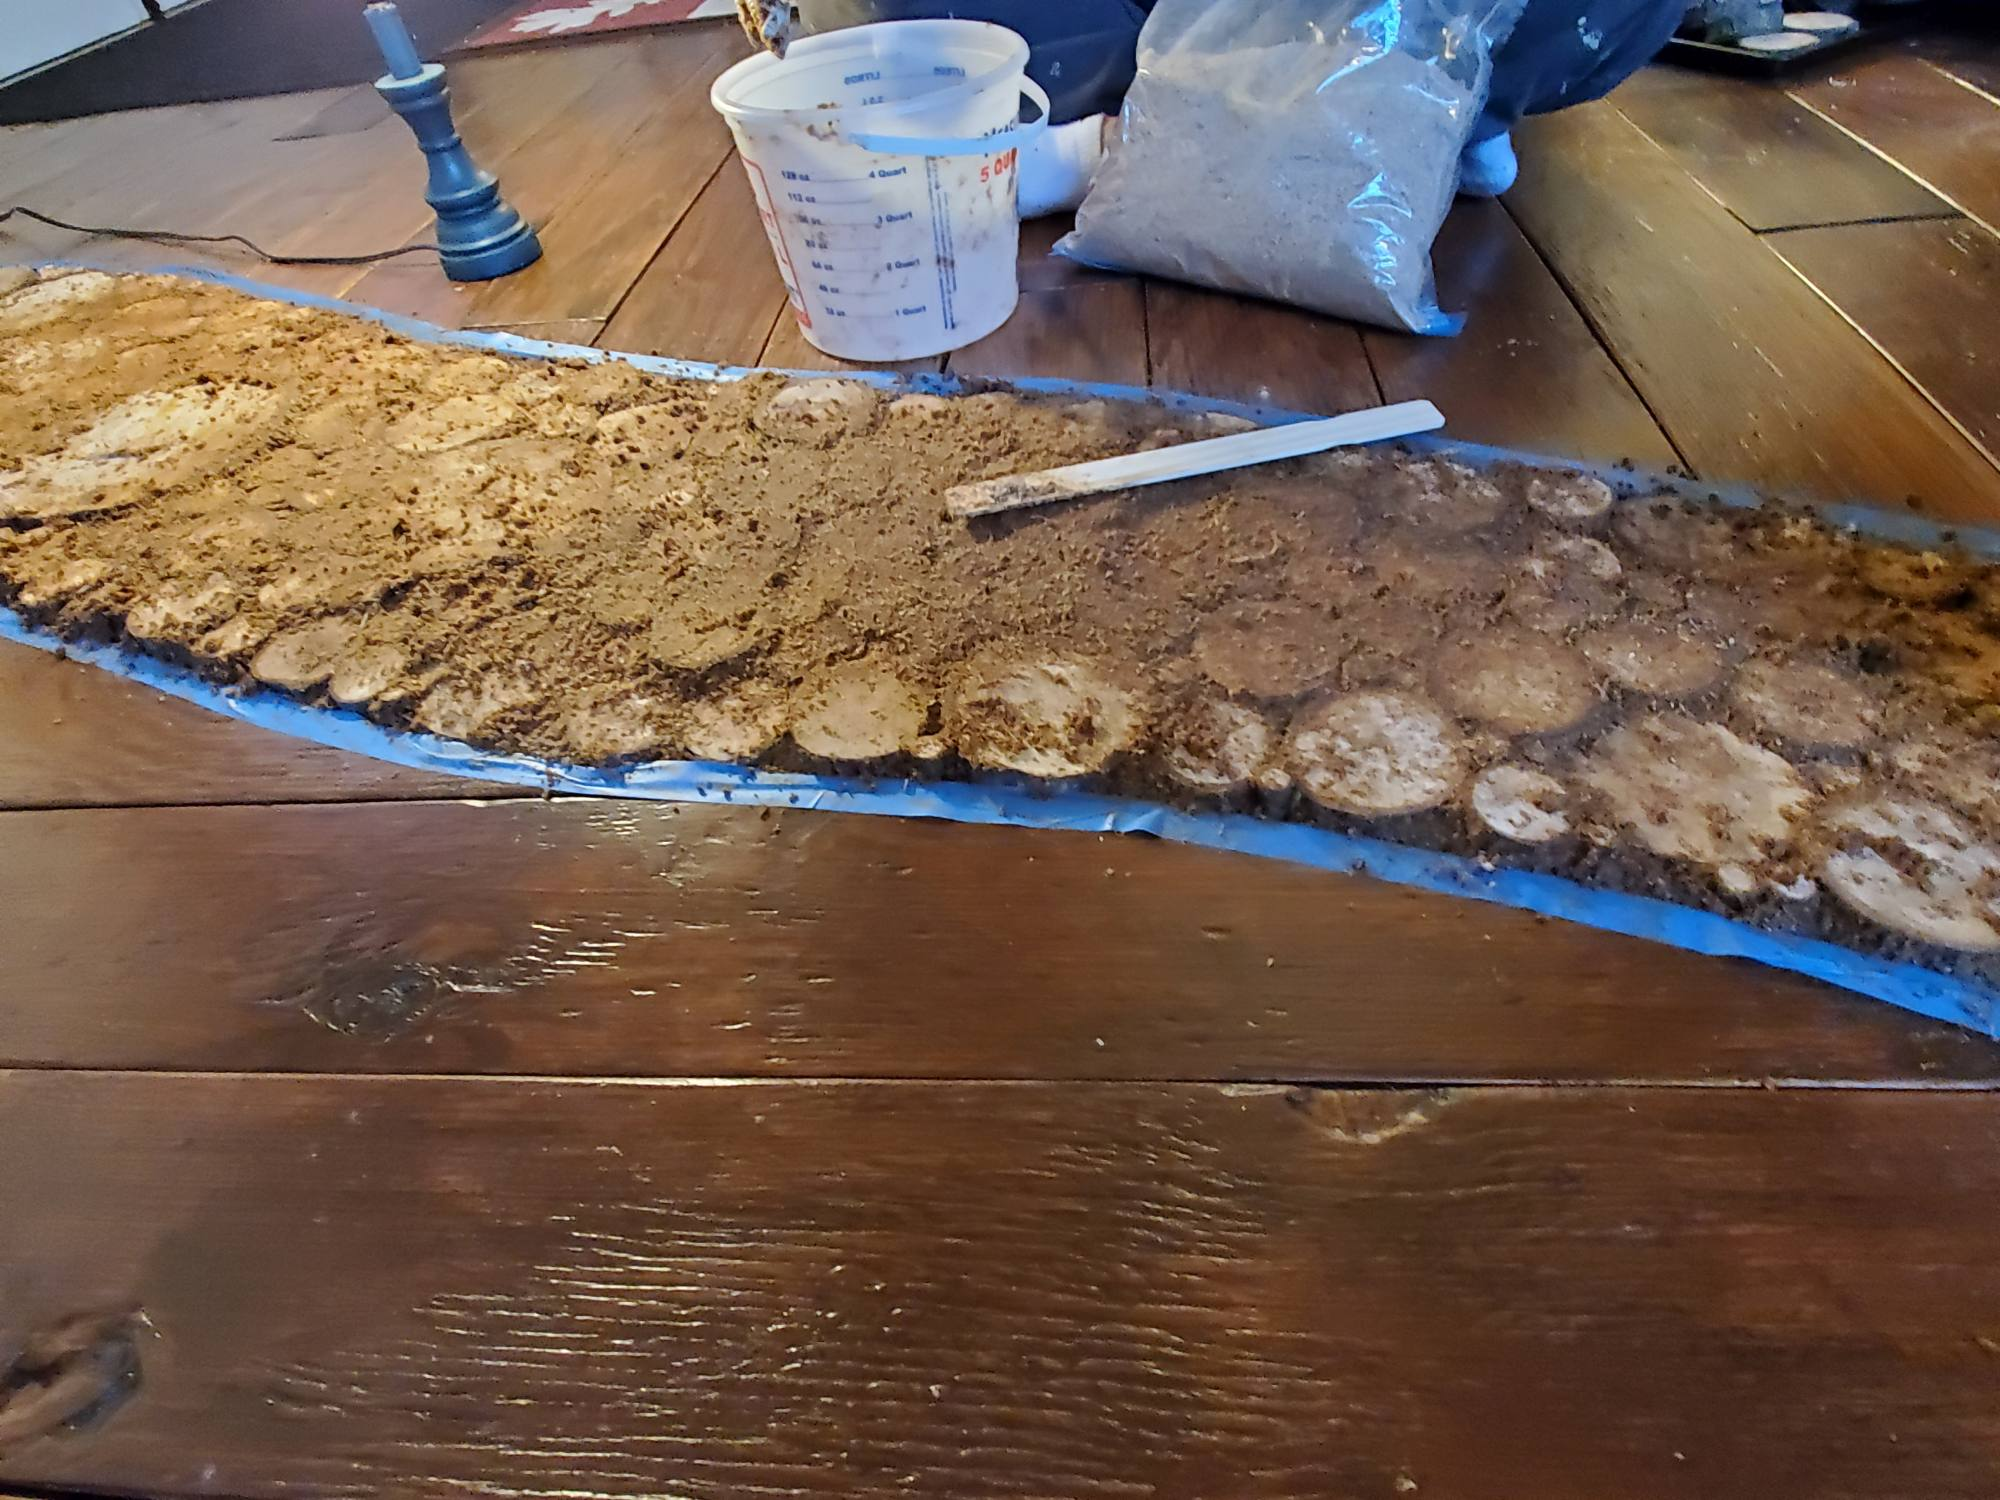 Installing An End Grain Flooring Inlay - The wood slices are in place and the sawdust grout is being applied